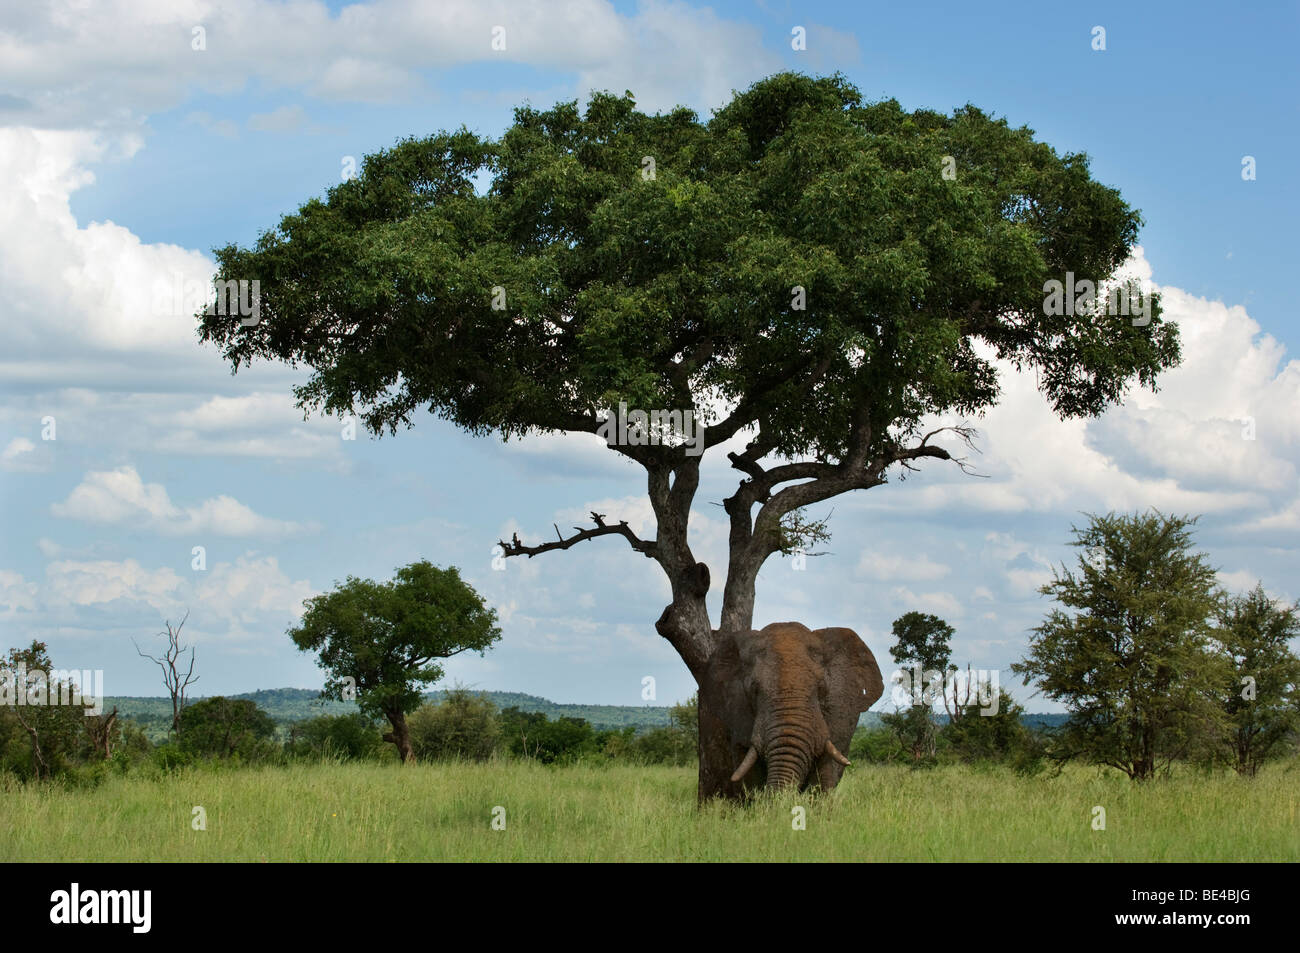 afrikanischer elefant unter einem marula baum loxodonta africana africana kr ger nationalpark. Black Bedroom Furniture Sets. Home Design Ideas